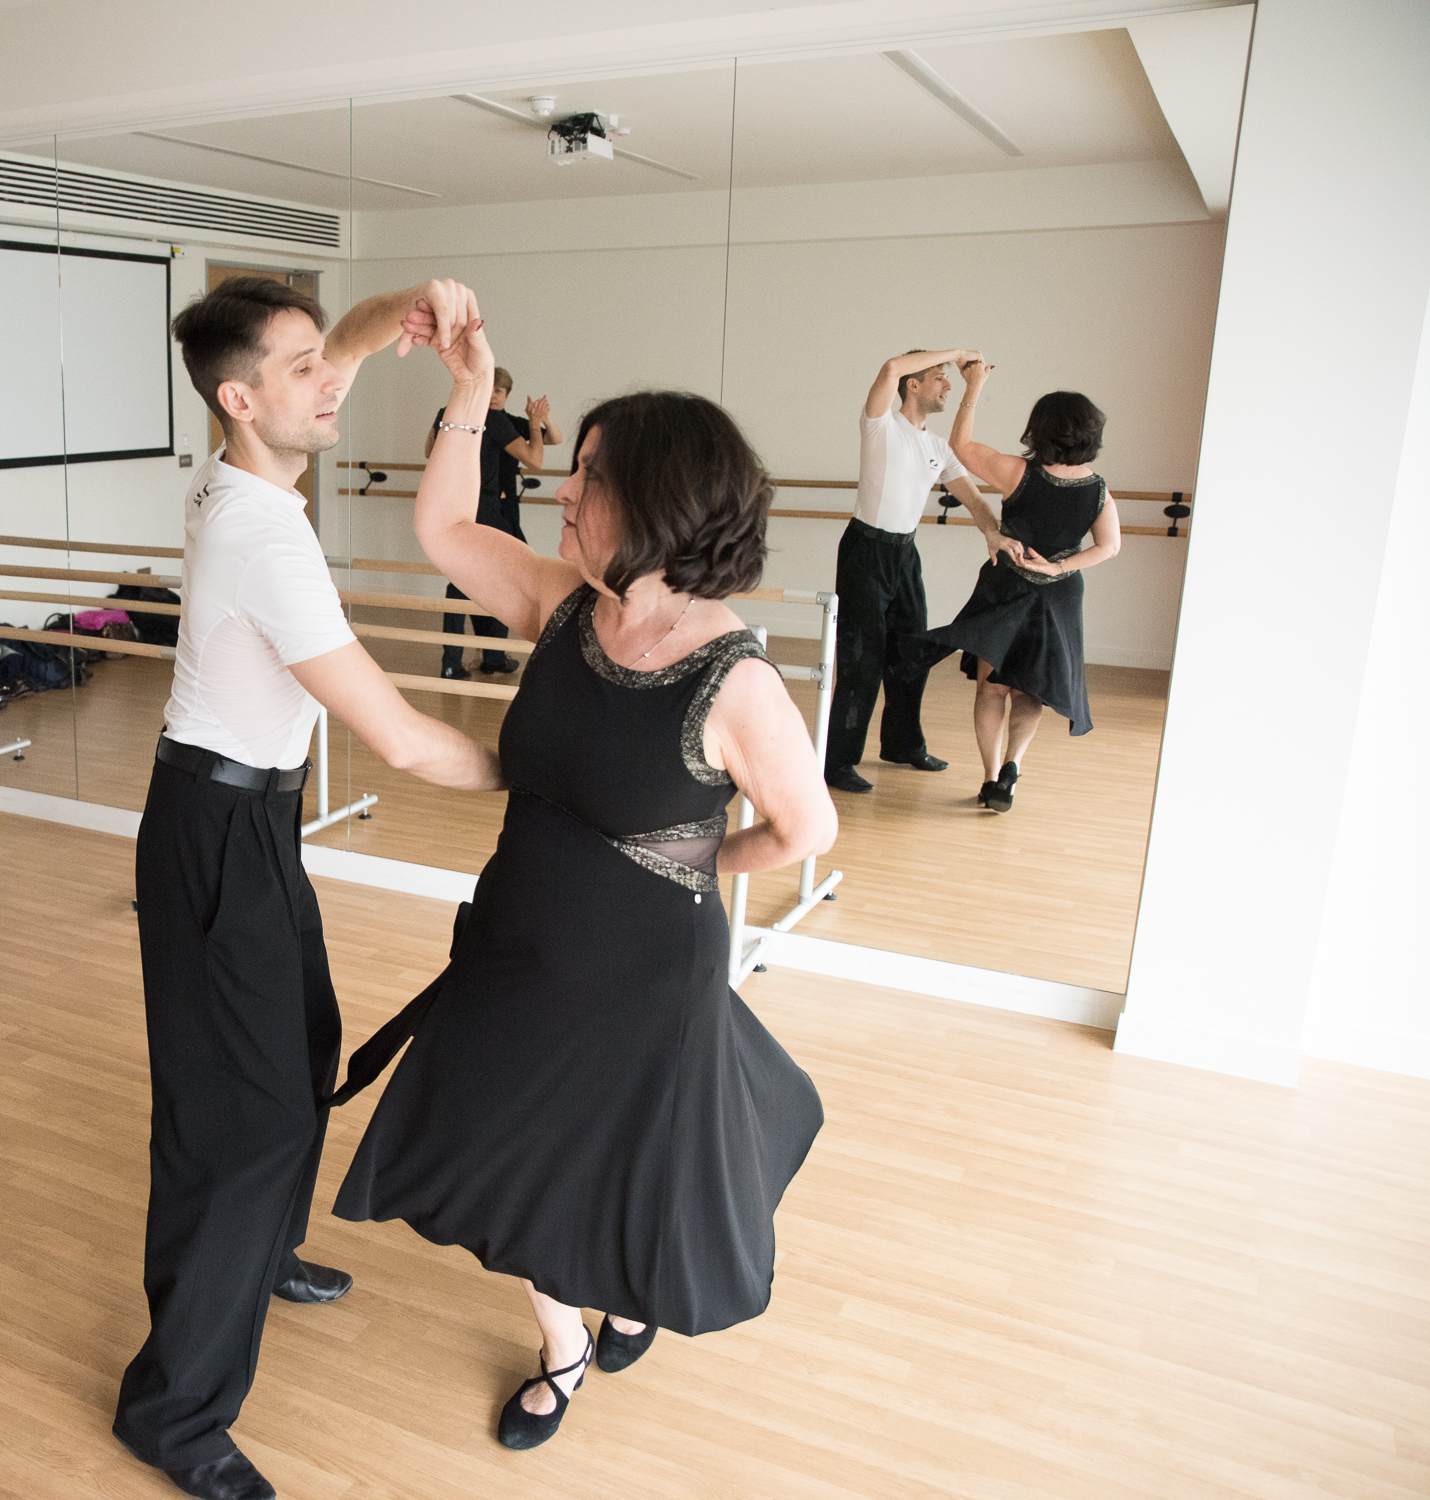 click to find out more about our Salsa course